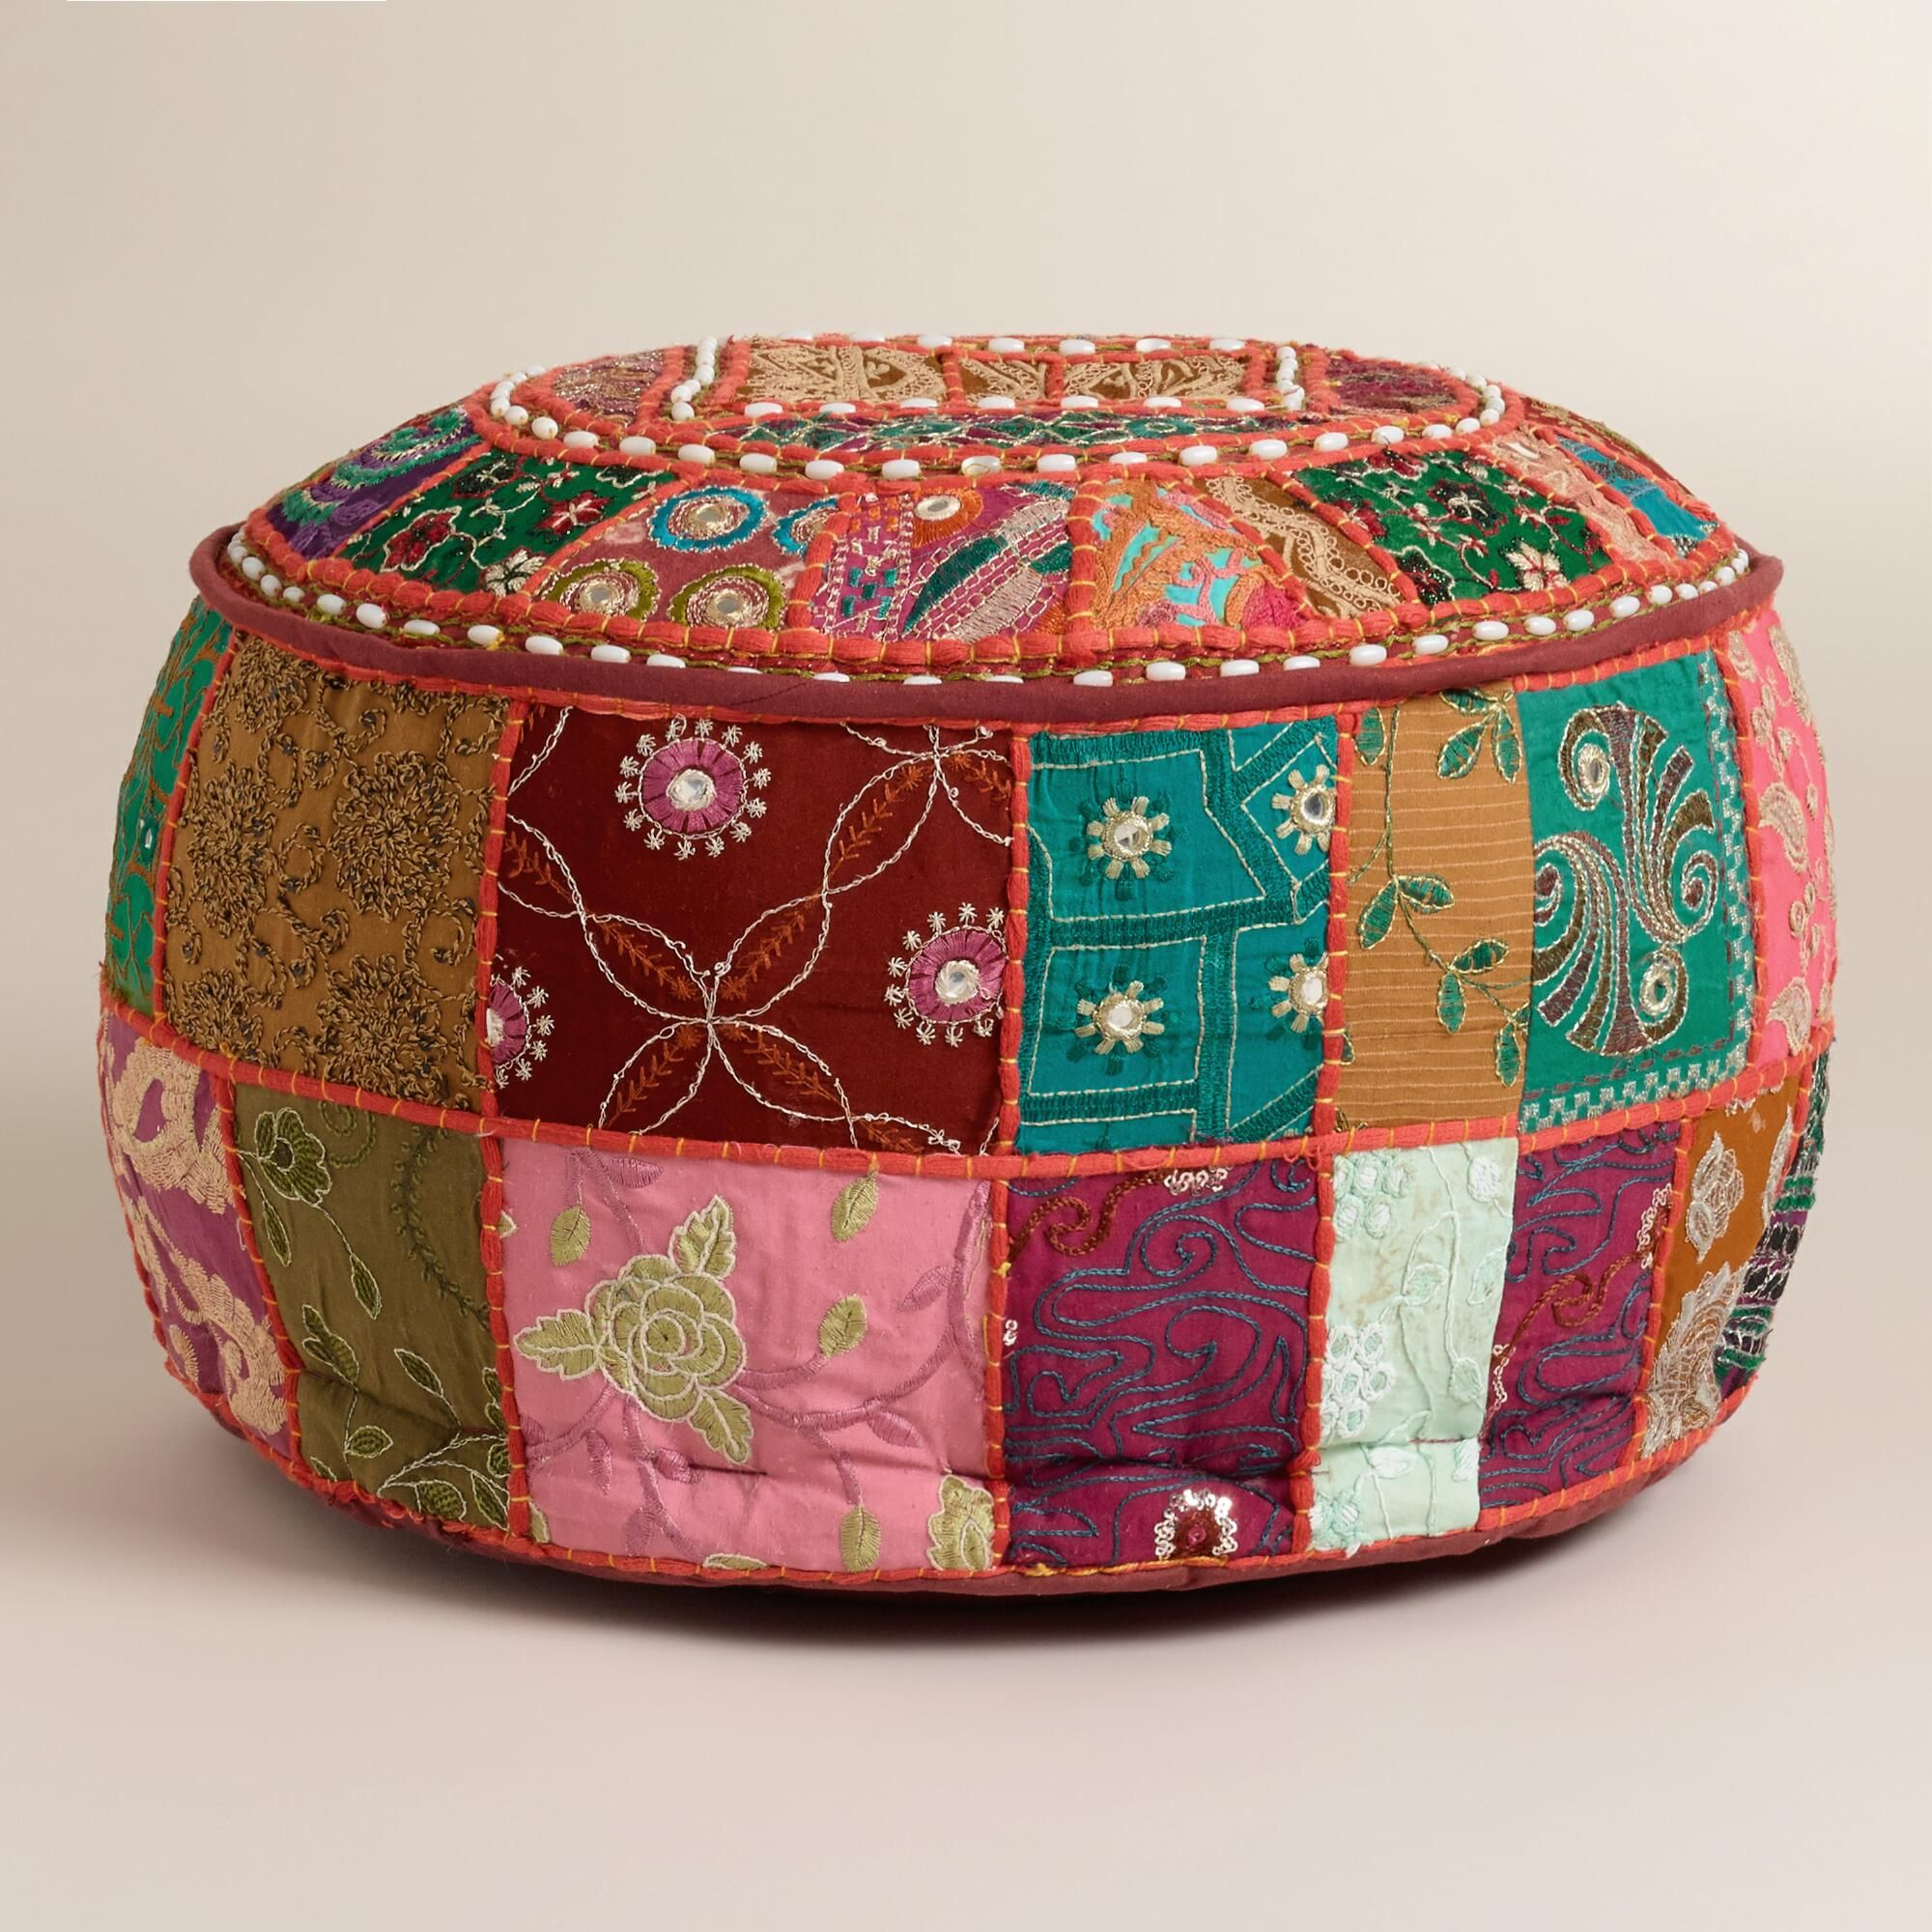 Made of vibrant recycled fabrics with embellishments and Indian ...